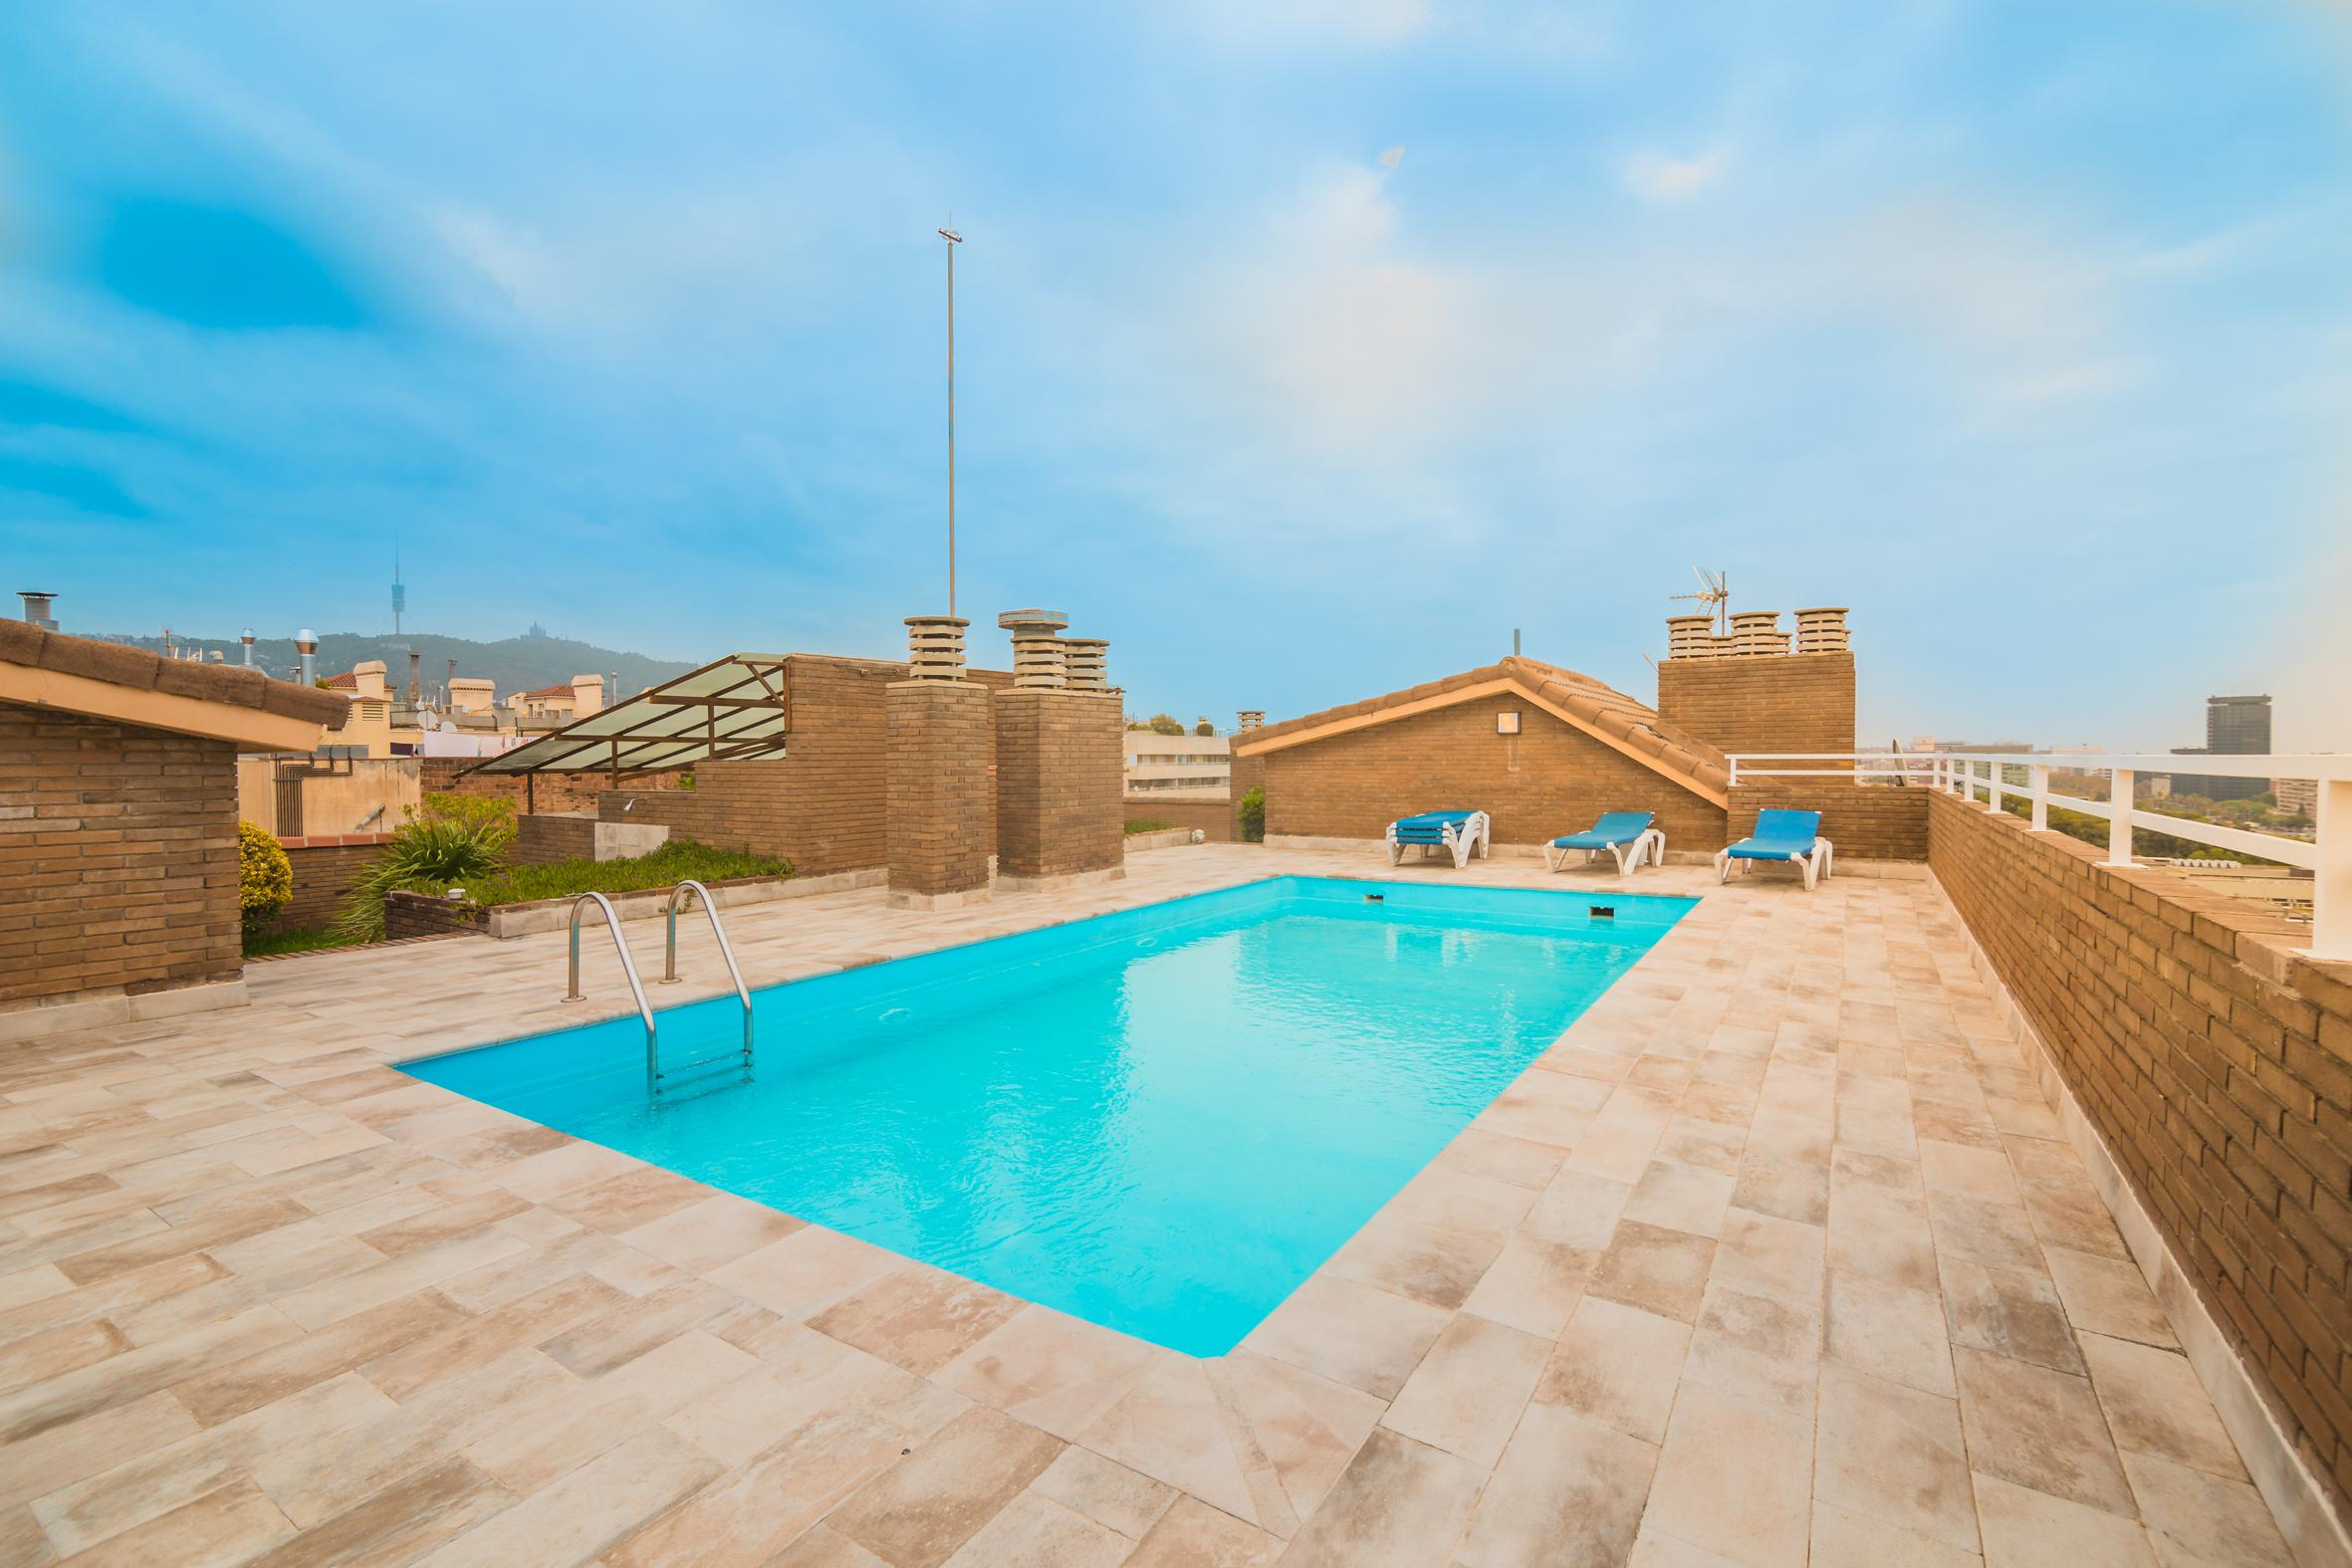 246902 Flat for sale in Les Corts, Pedralbes 5